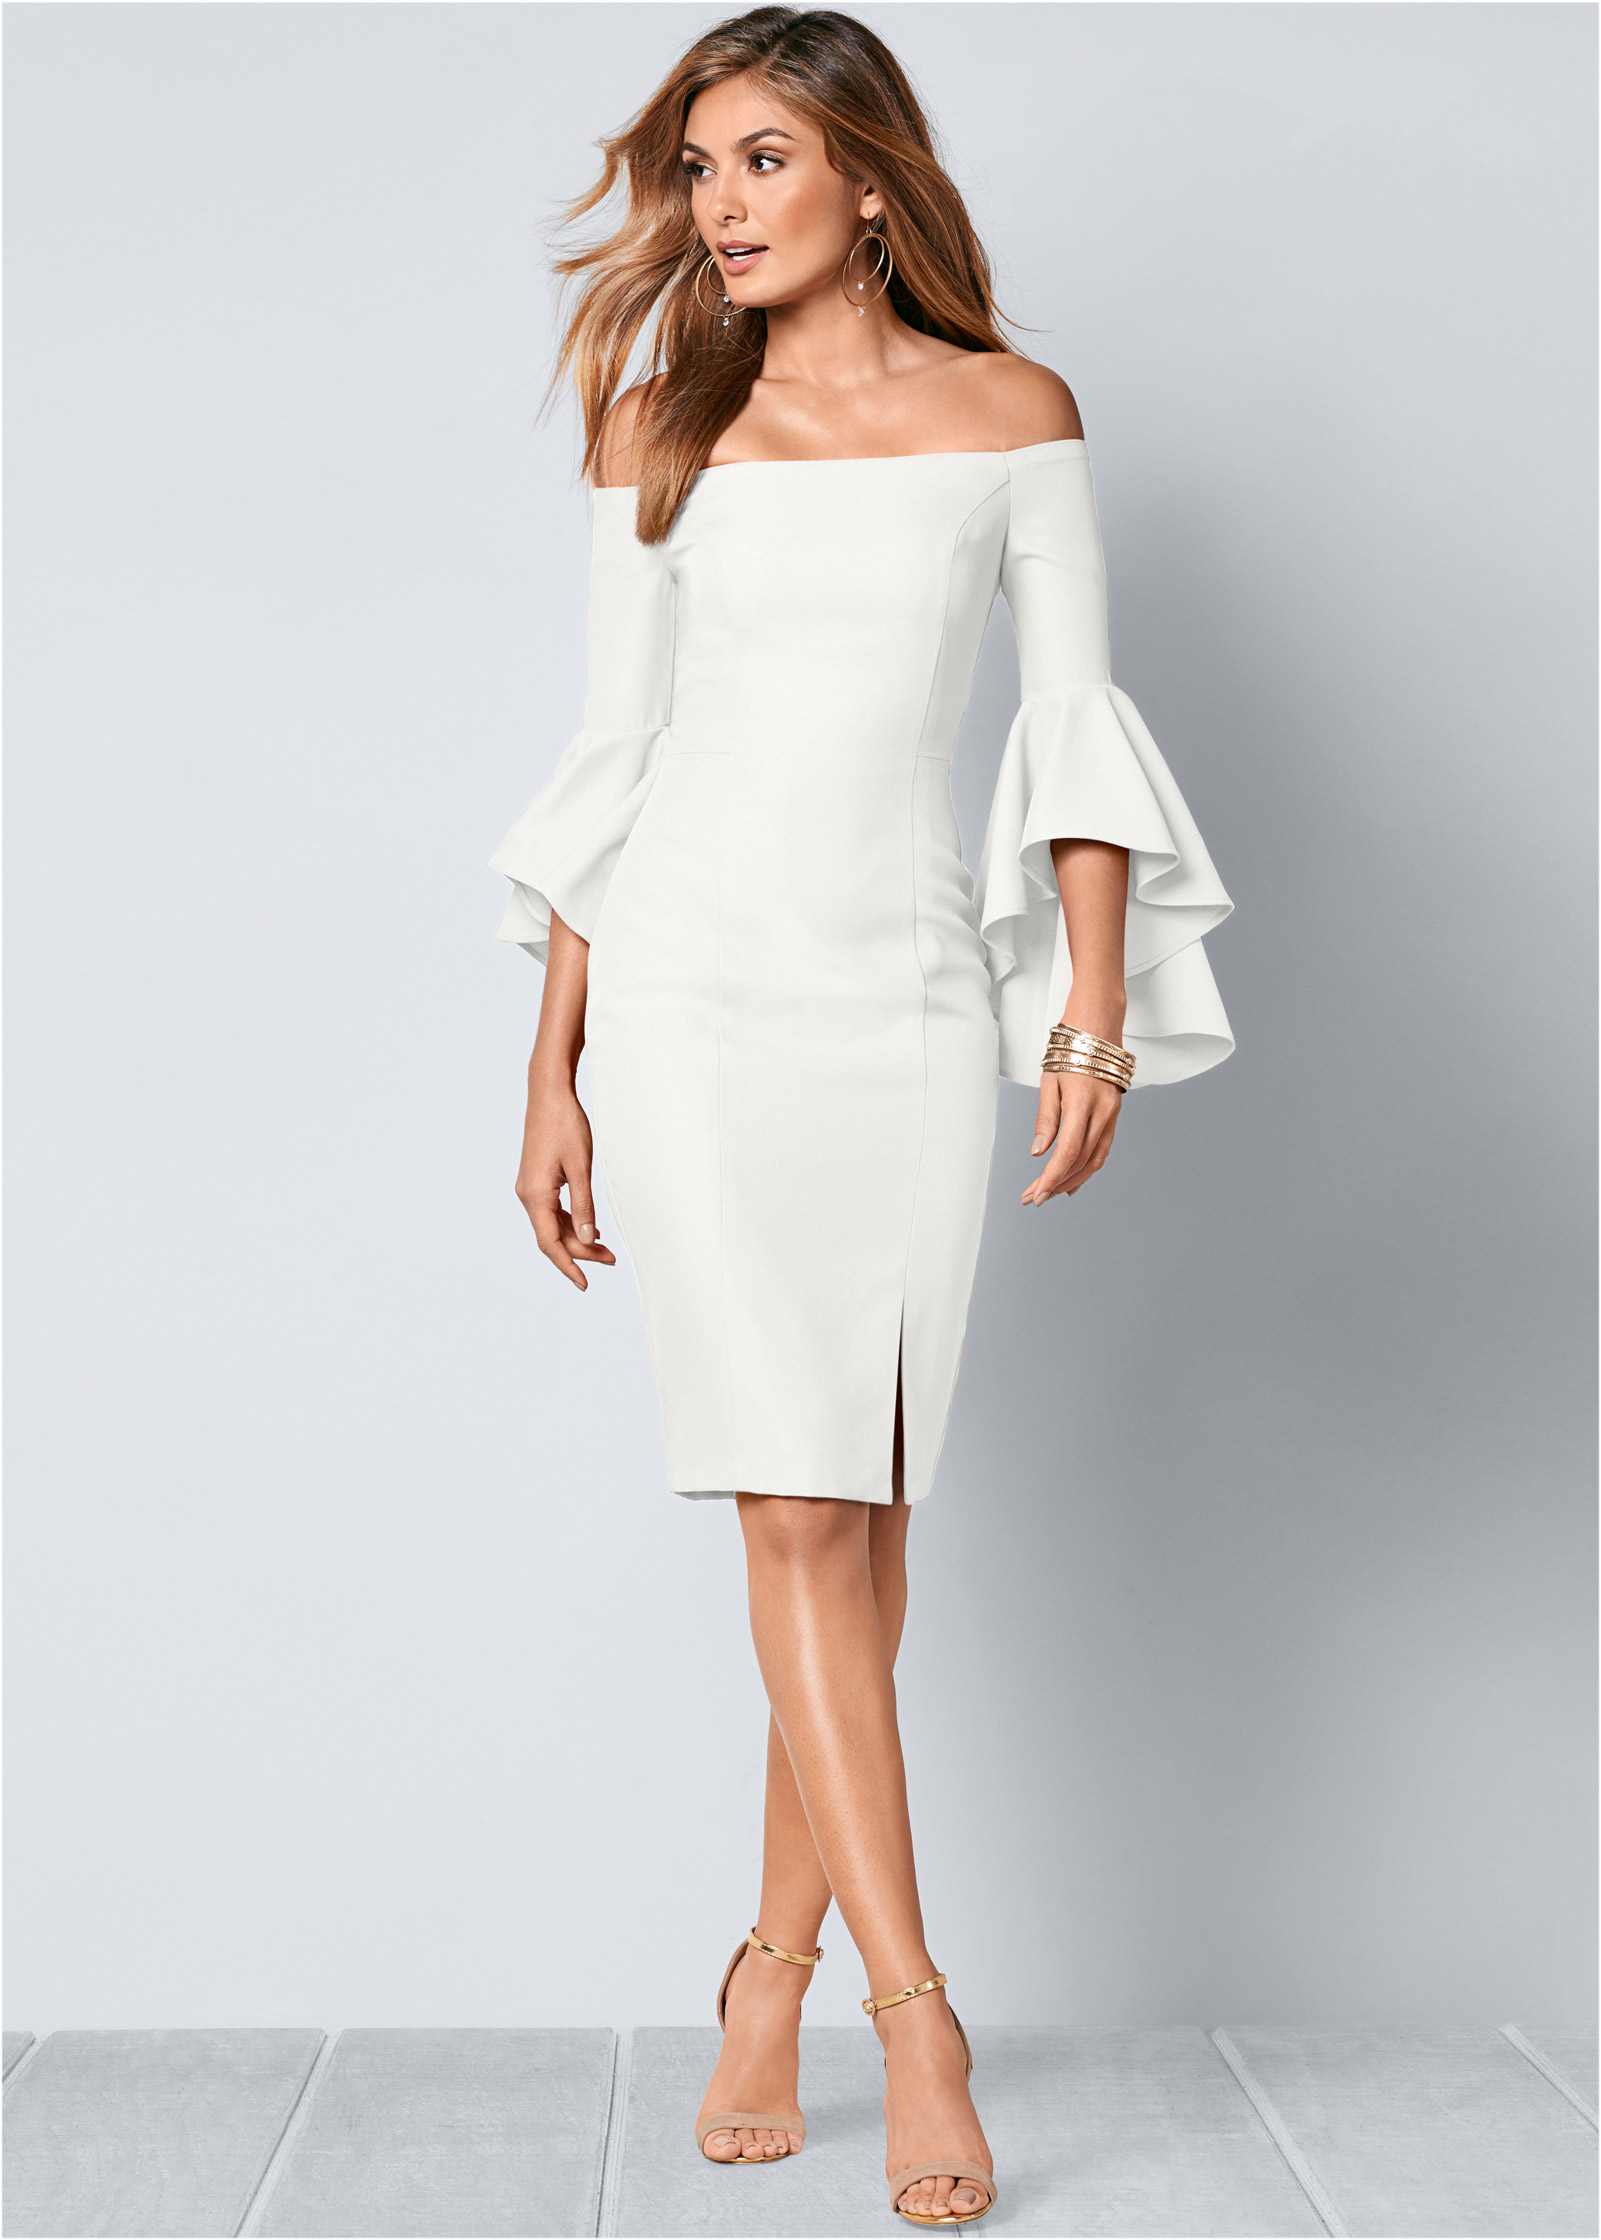 SLEEVE DETAIL DRESS in White | VENUS